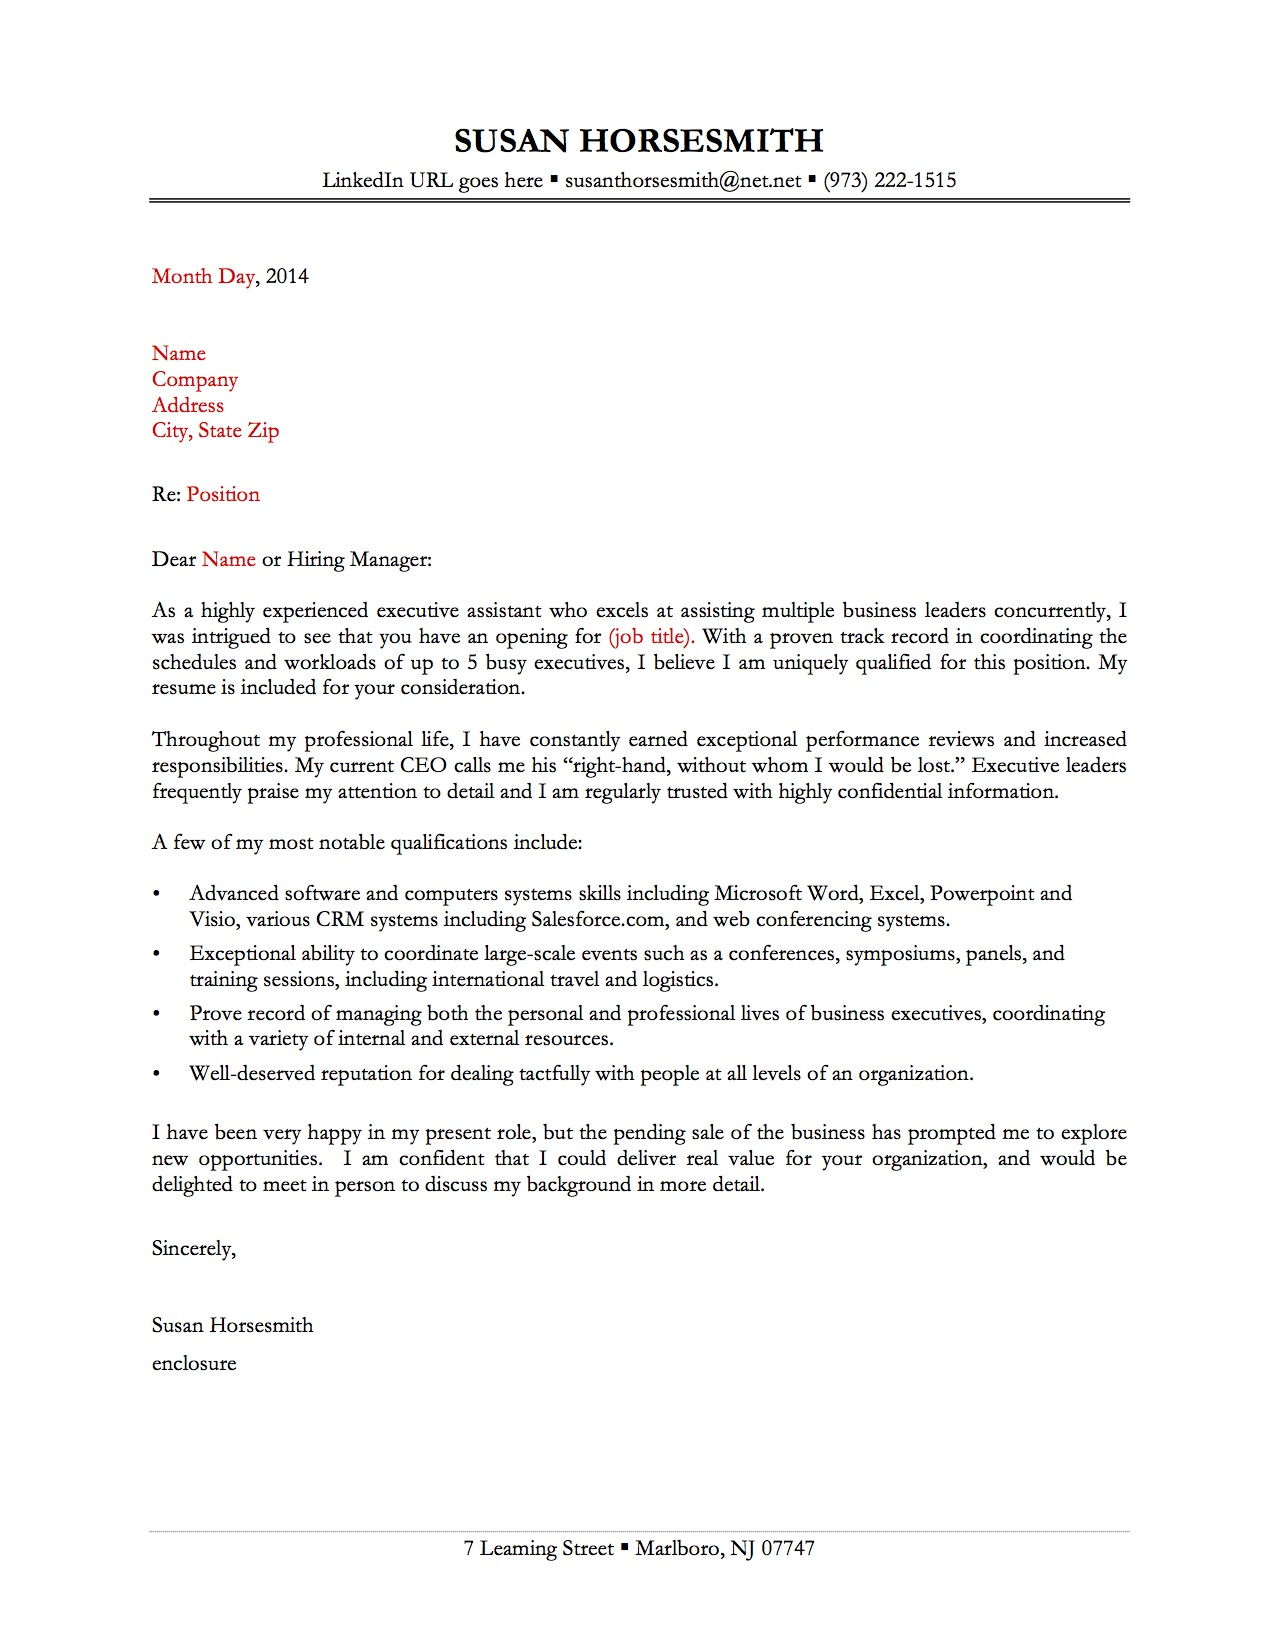 sample cover letter 1 - Assistant To The Ceo Cover Letter